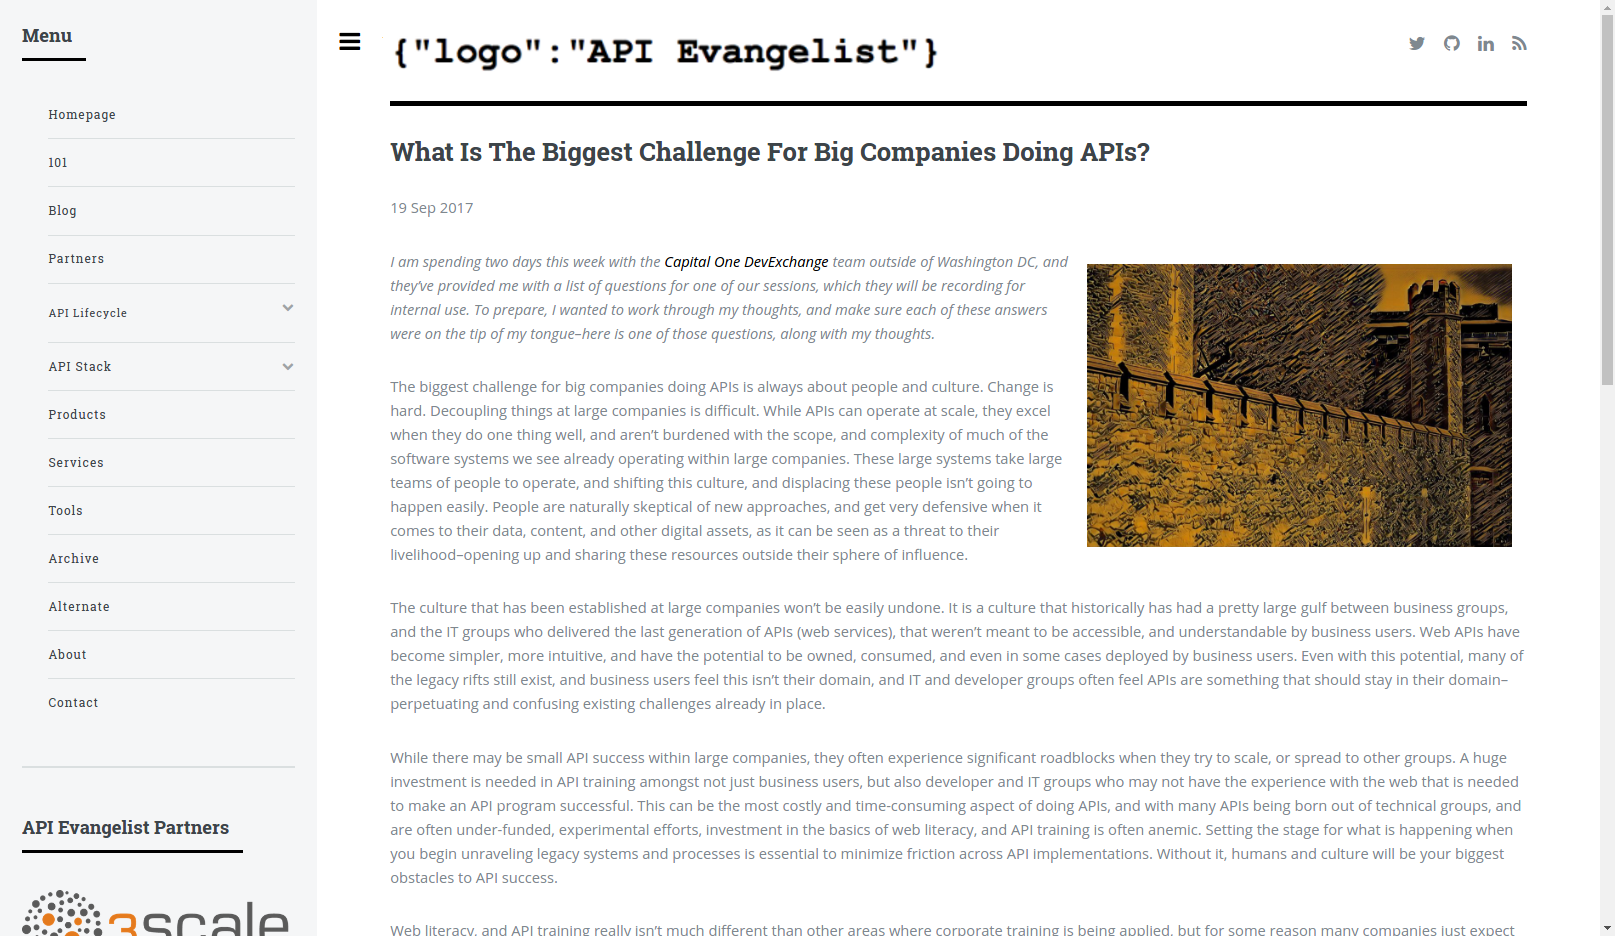 What Is The Biggest Challenge For Big Companies Doing APIs?